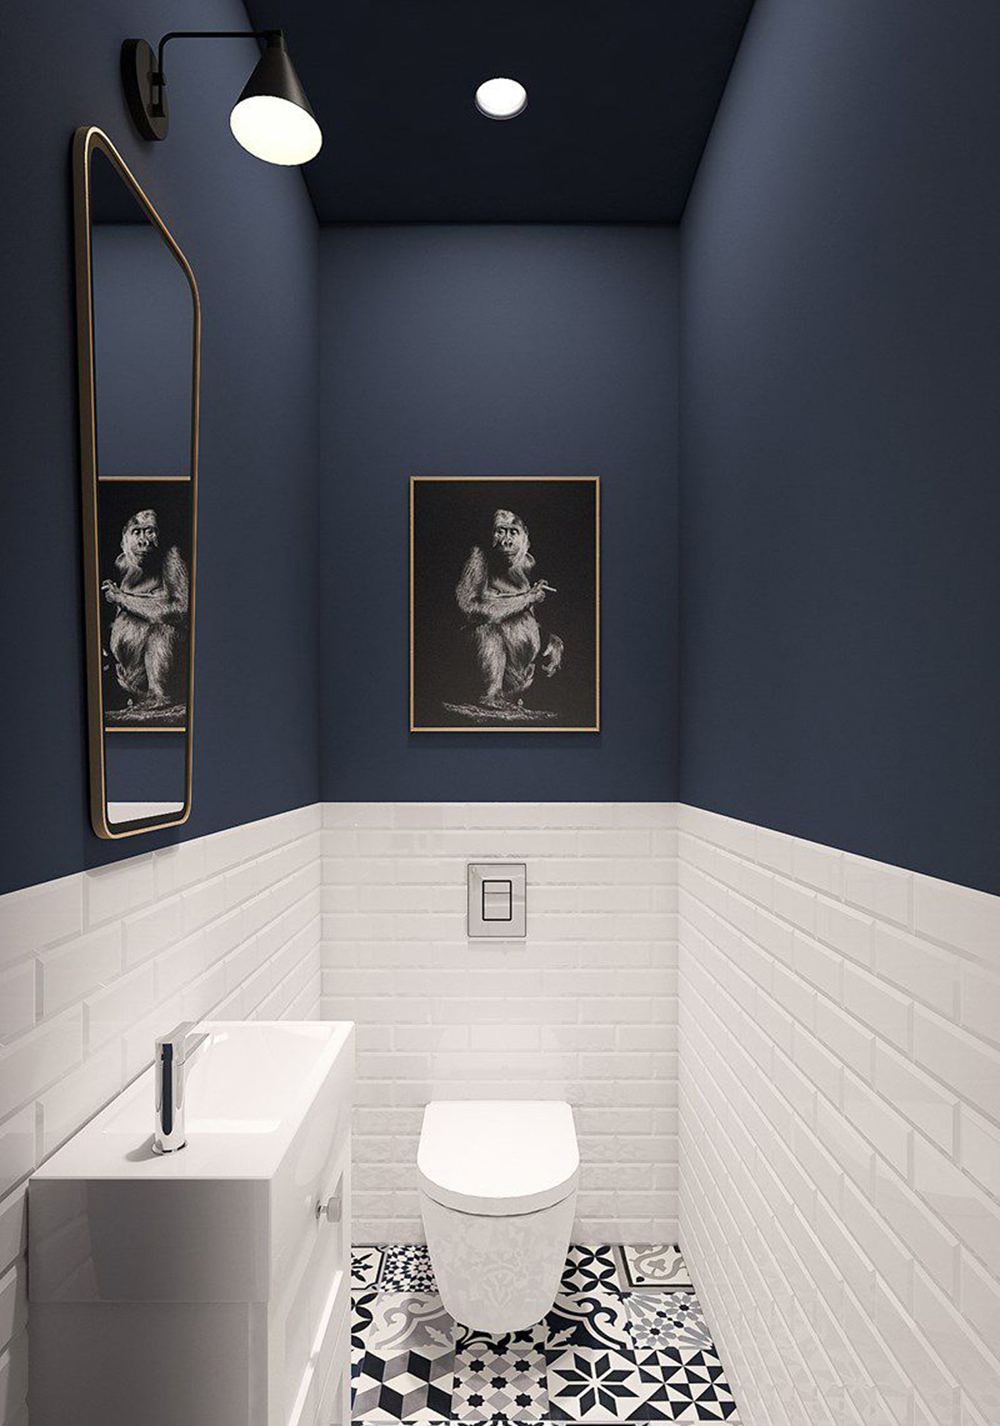 Stylish toilet with dark blue walls and white metro tiles - 35 ideas for blue wall colour in home decoration | Aliz's Wonderland